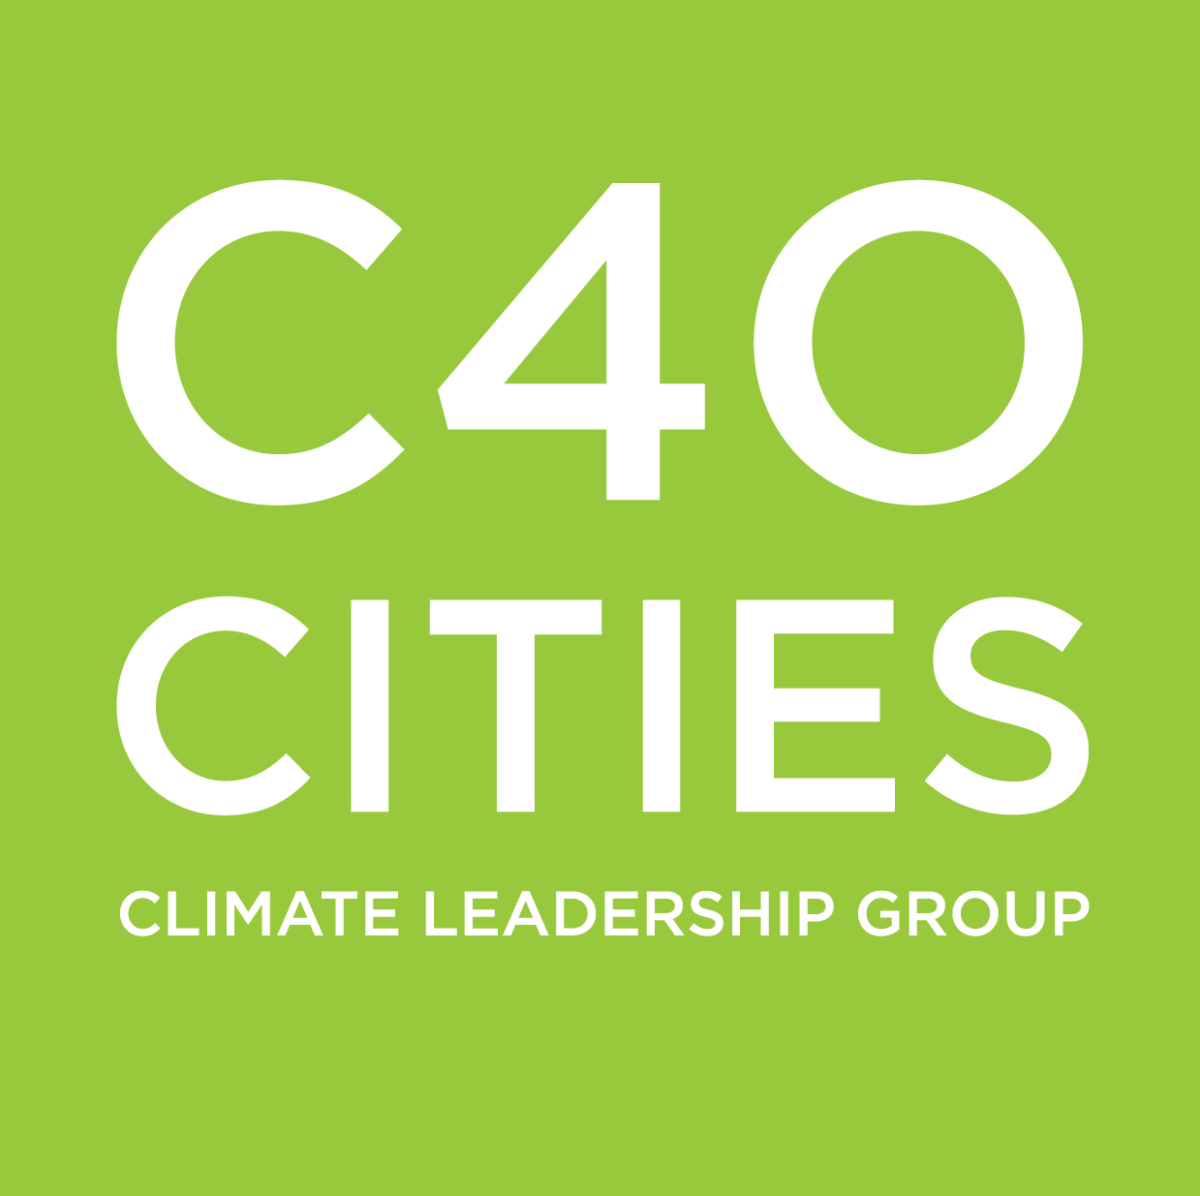 Stéphane Villecroze participates at the C40 Divest/Invest Forum at London's City Hall on March 20th